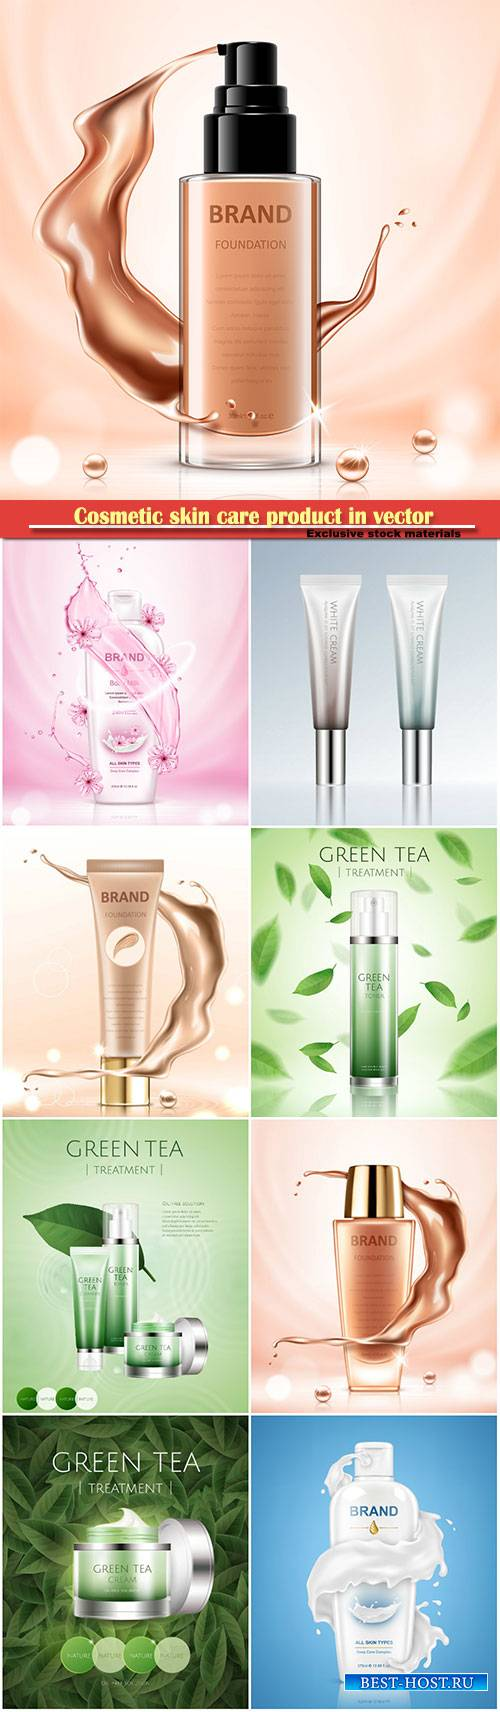 Cosmetic skin care product in vector illustration